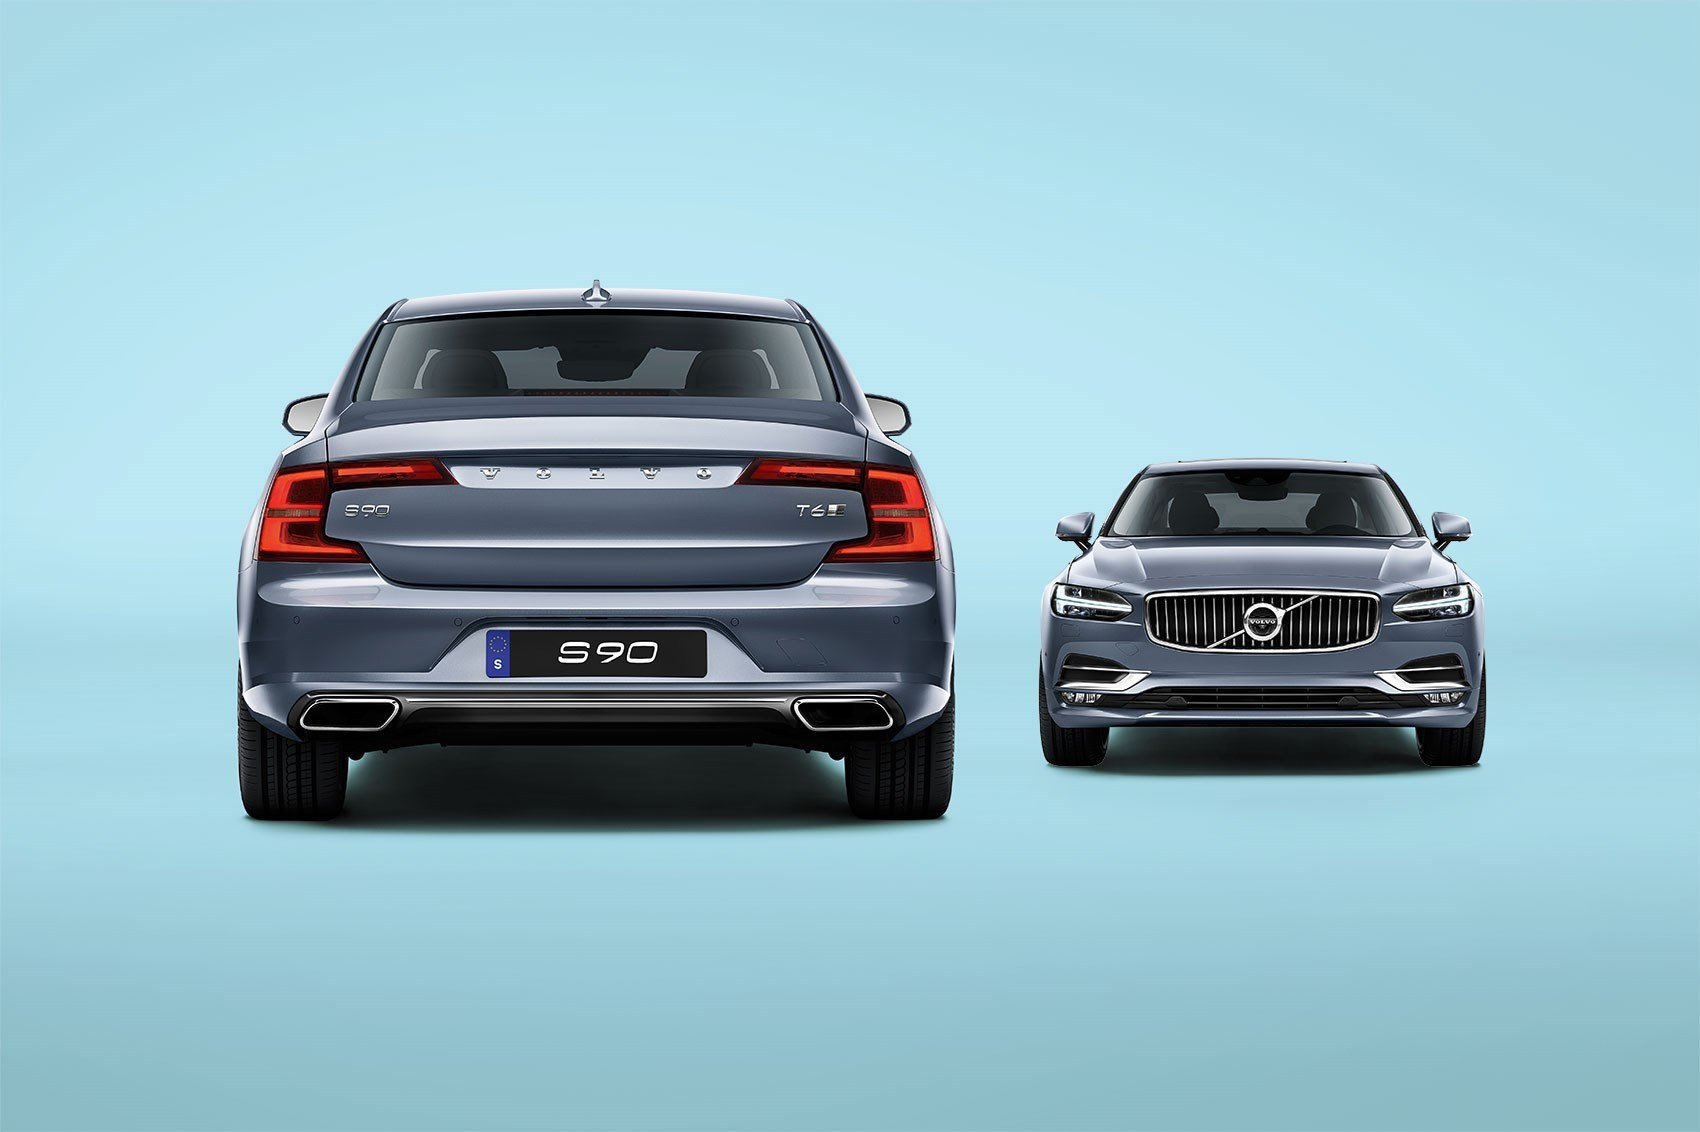 Latest All New Volvo S90 Stylish Smart And Not Another 5 Series Free Download